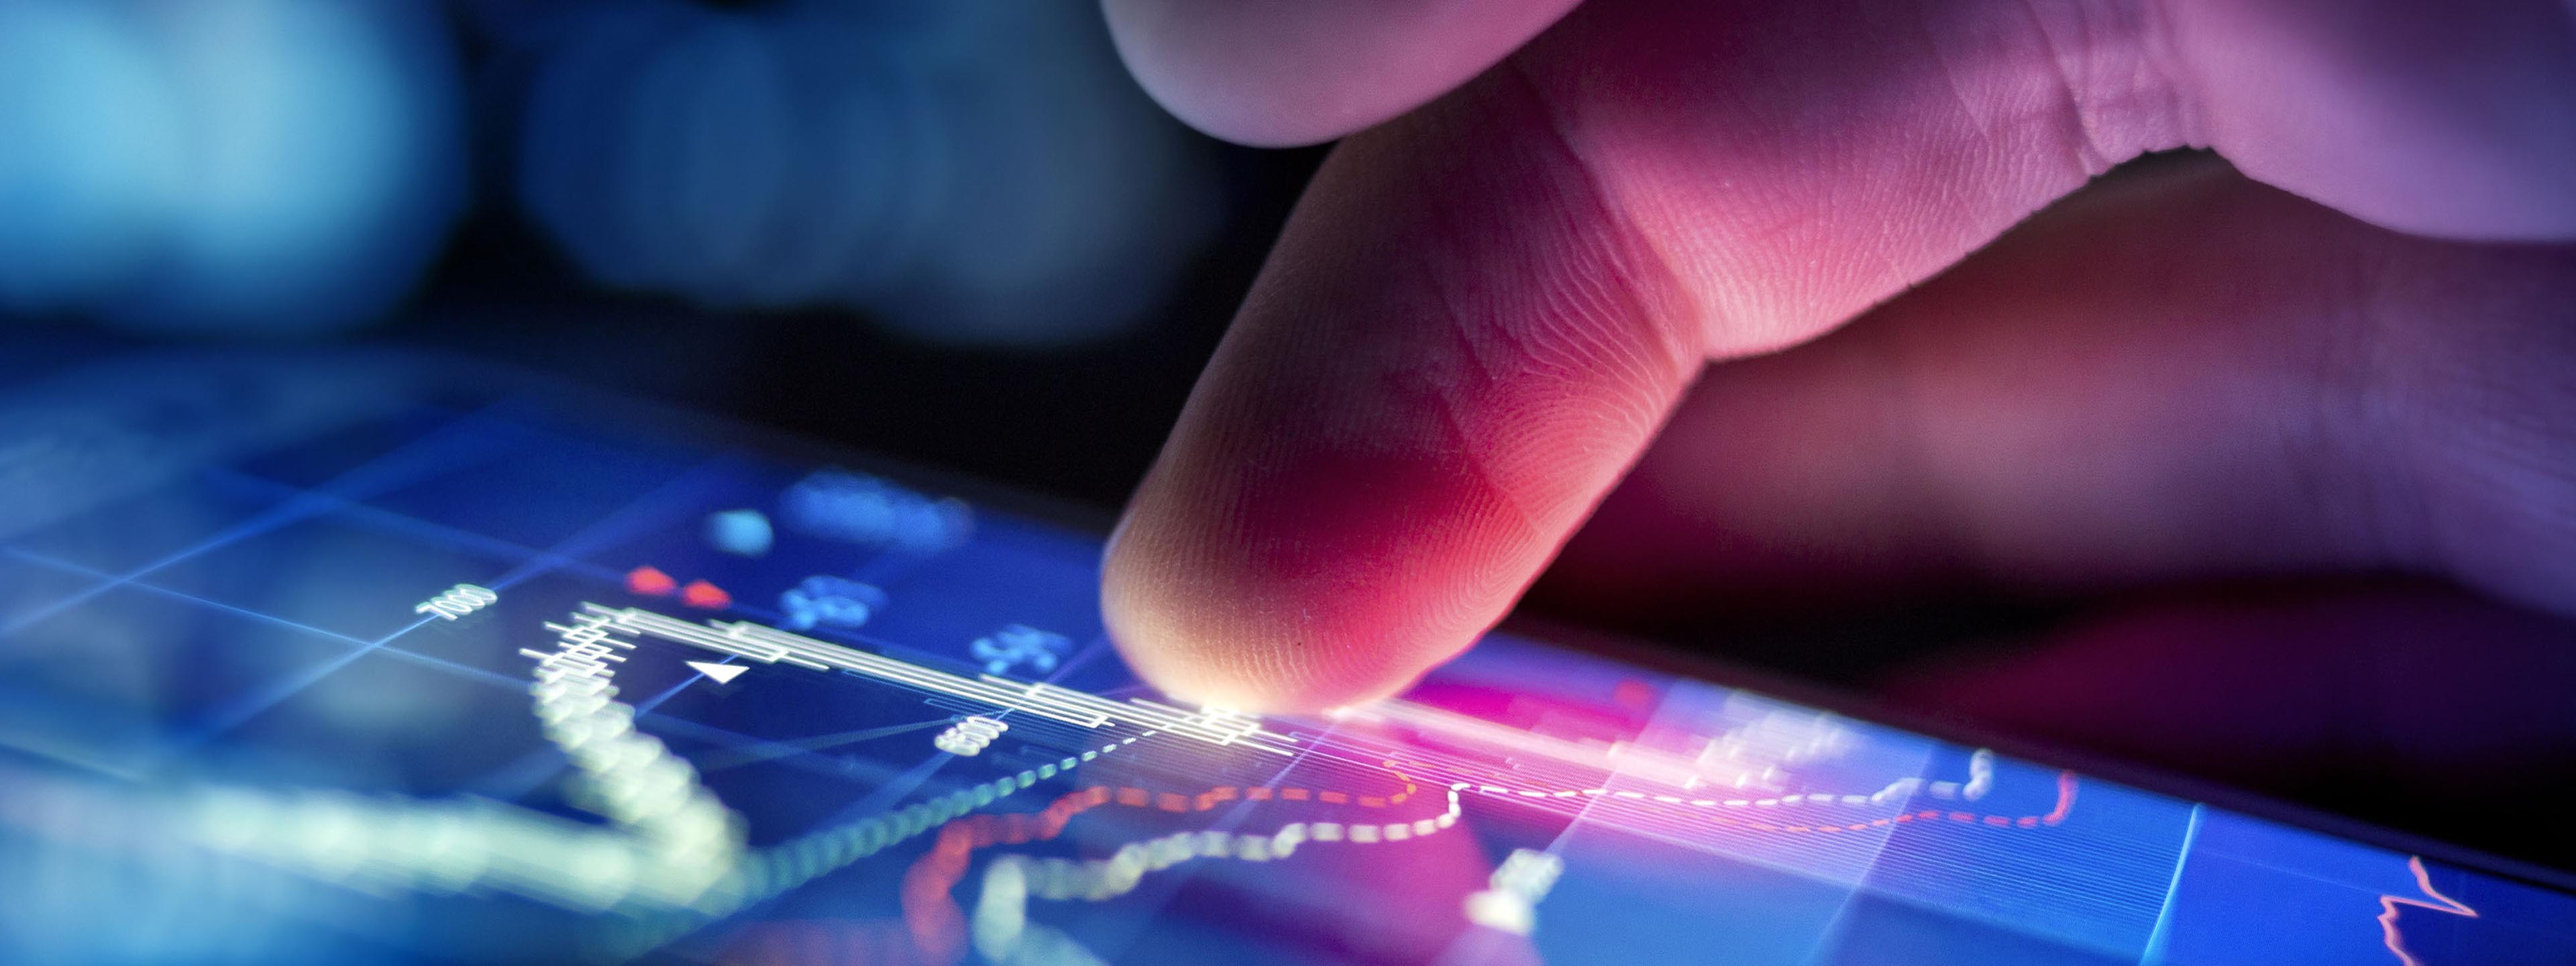 technology sector finger touch graphics